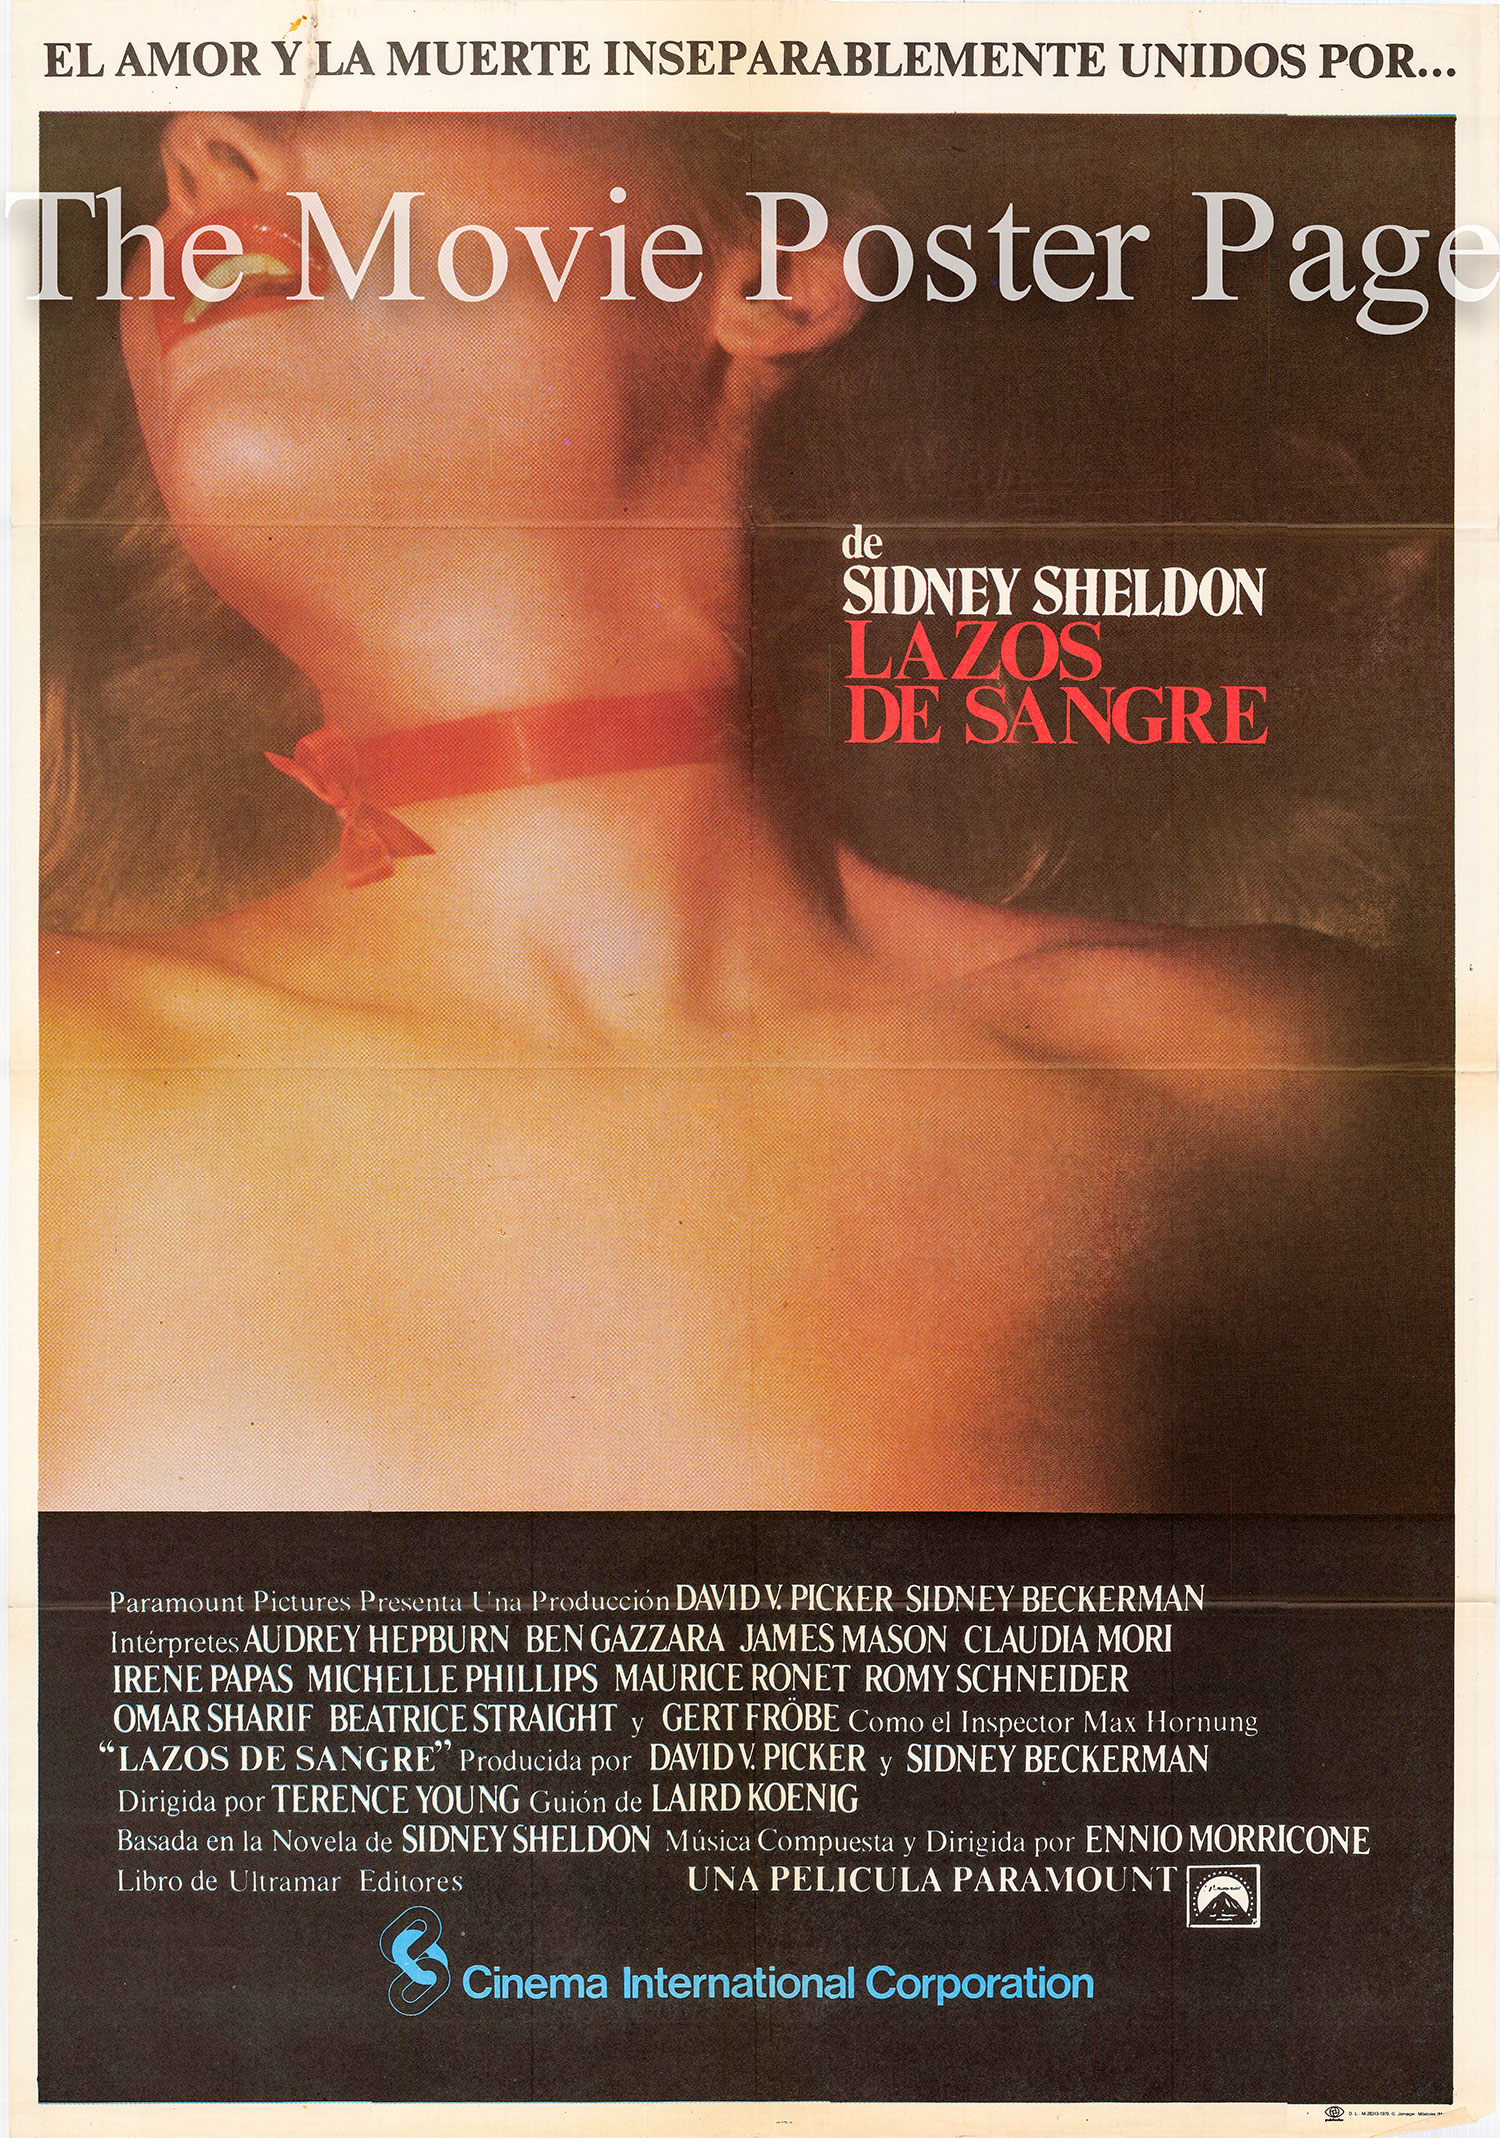 Pictured is a Spanish one-sheet poster for the 1979 Terence Young film Bloodline starring Audrey Hepburn as Eizabeth Roffe.